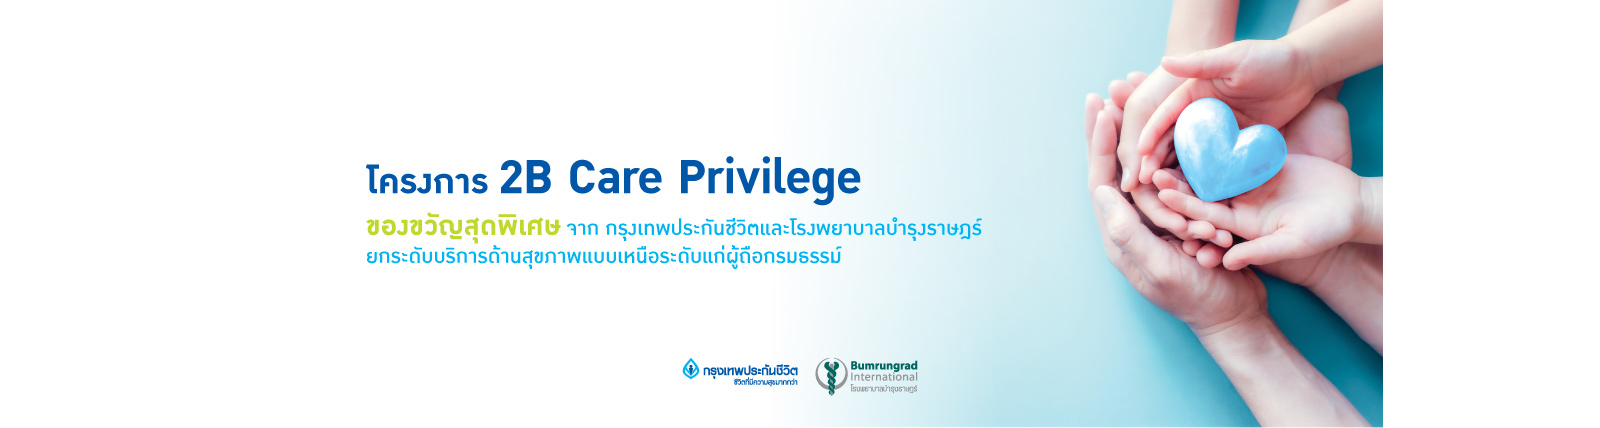 2B Care Privilege